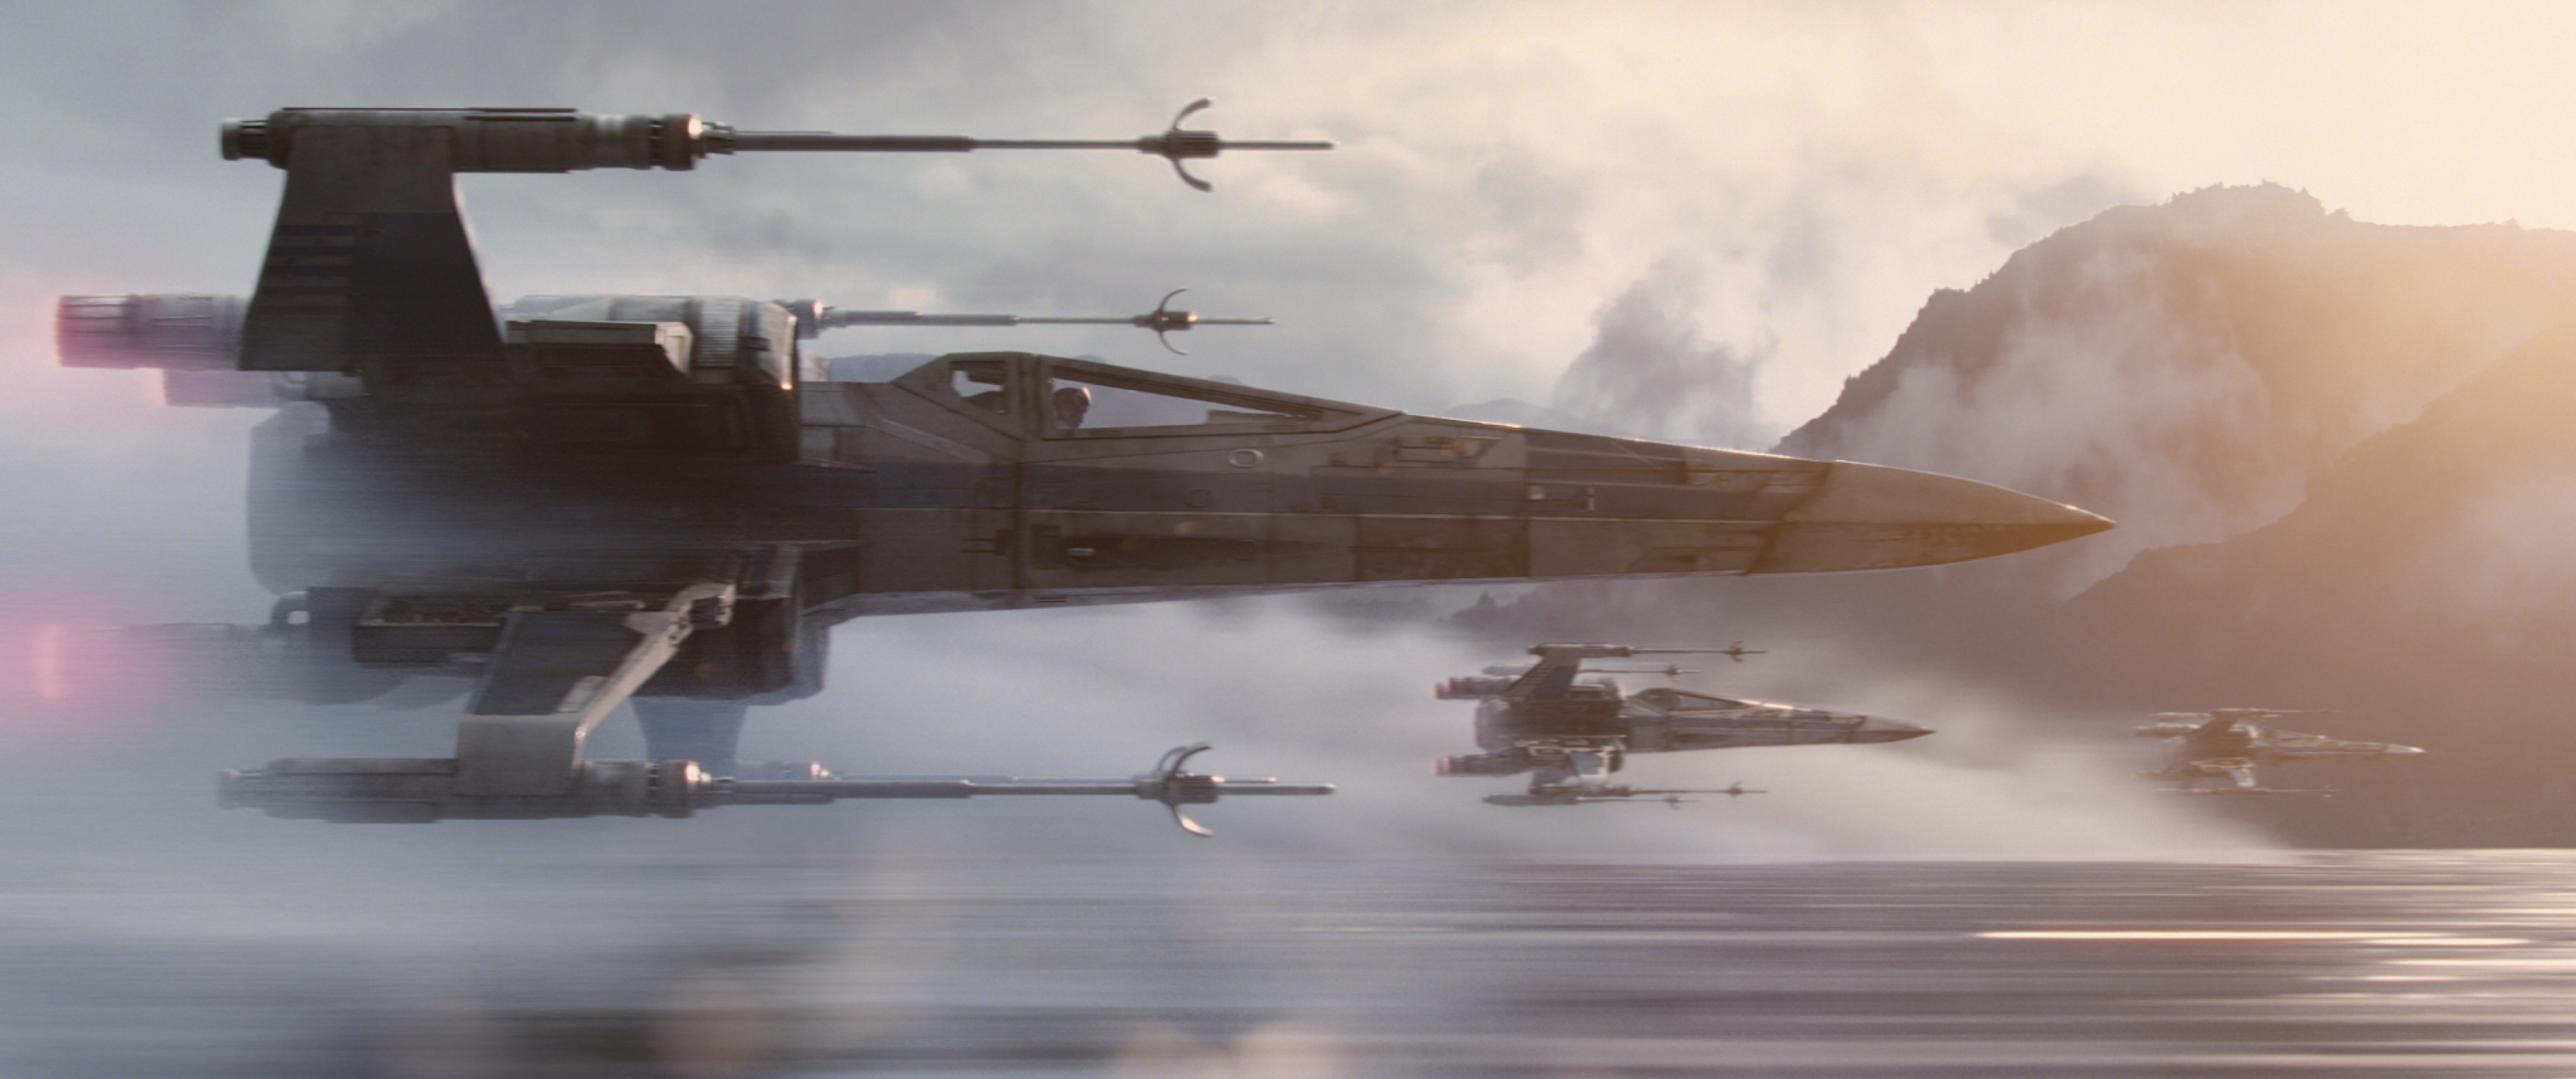 X-Wing: Old and New by BenjaminSapiens on DeviantArt